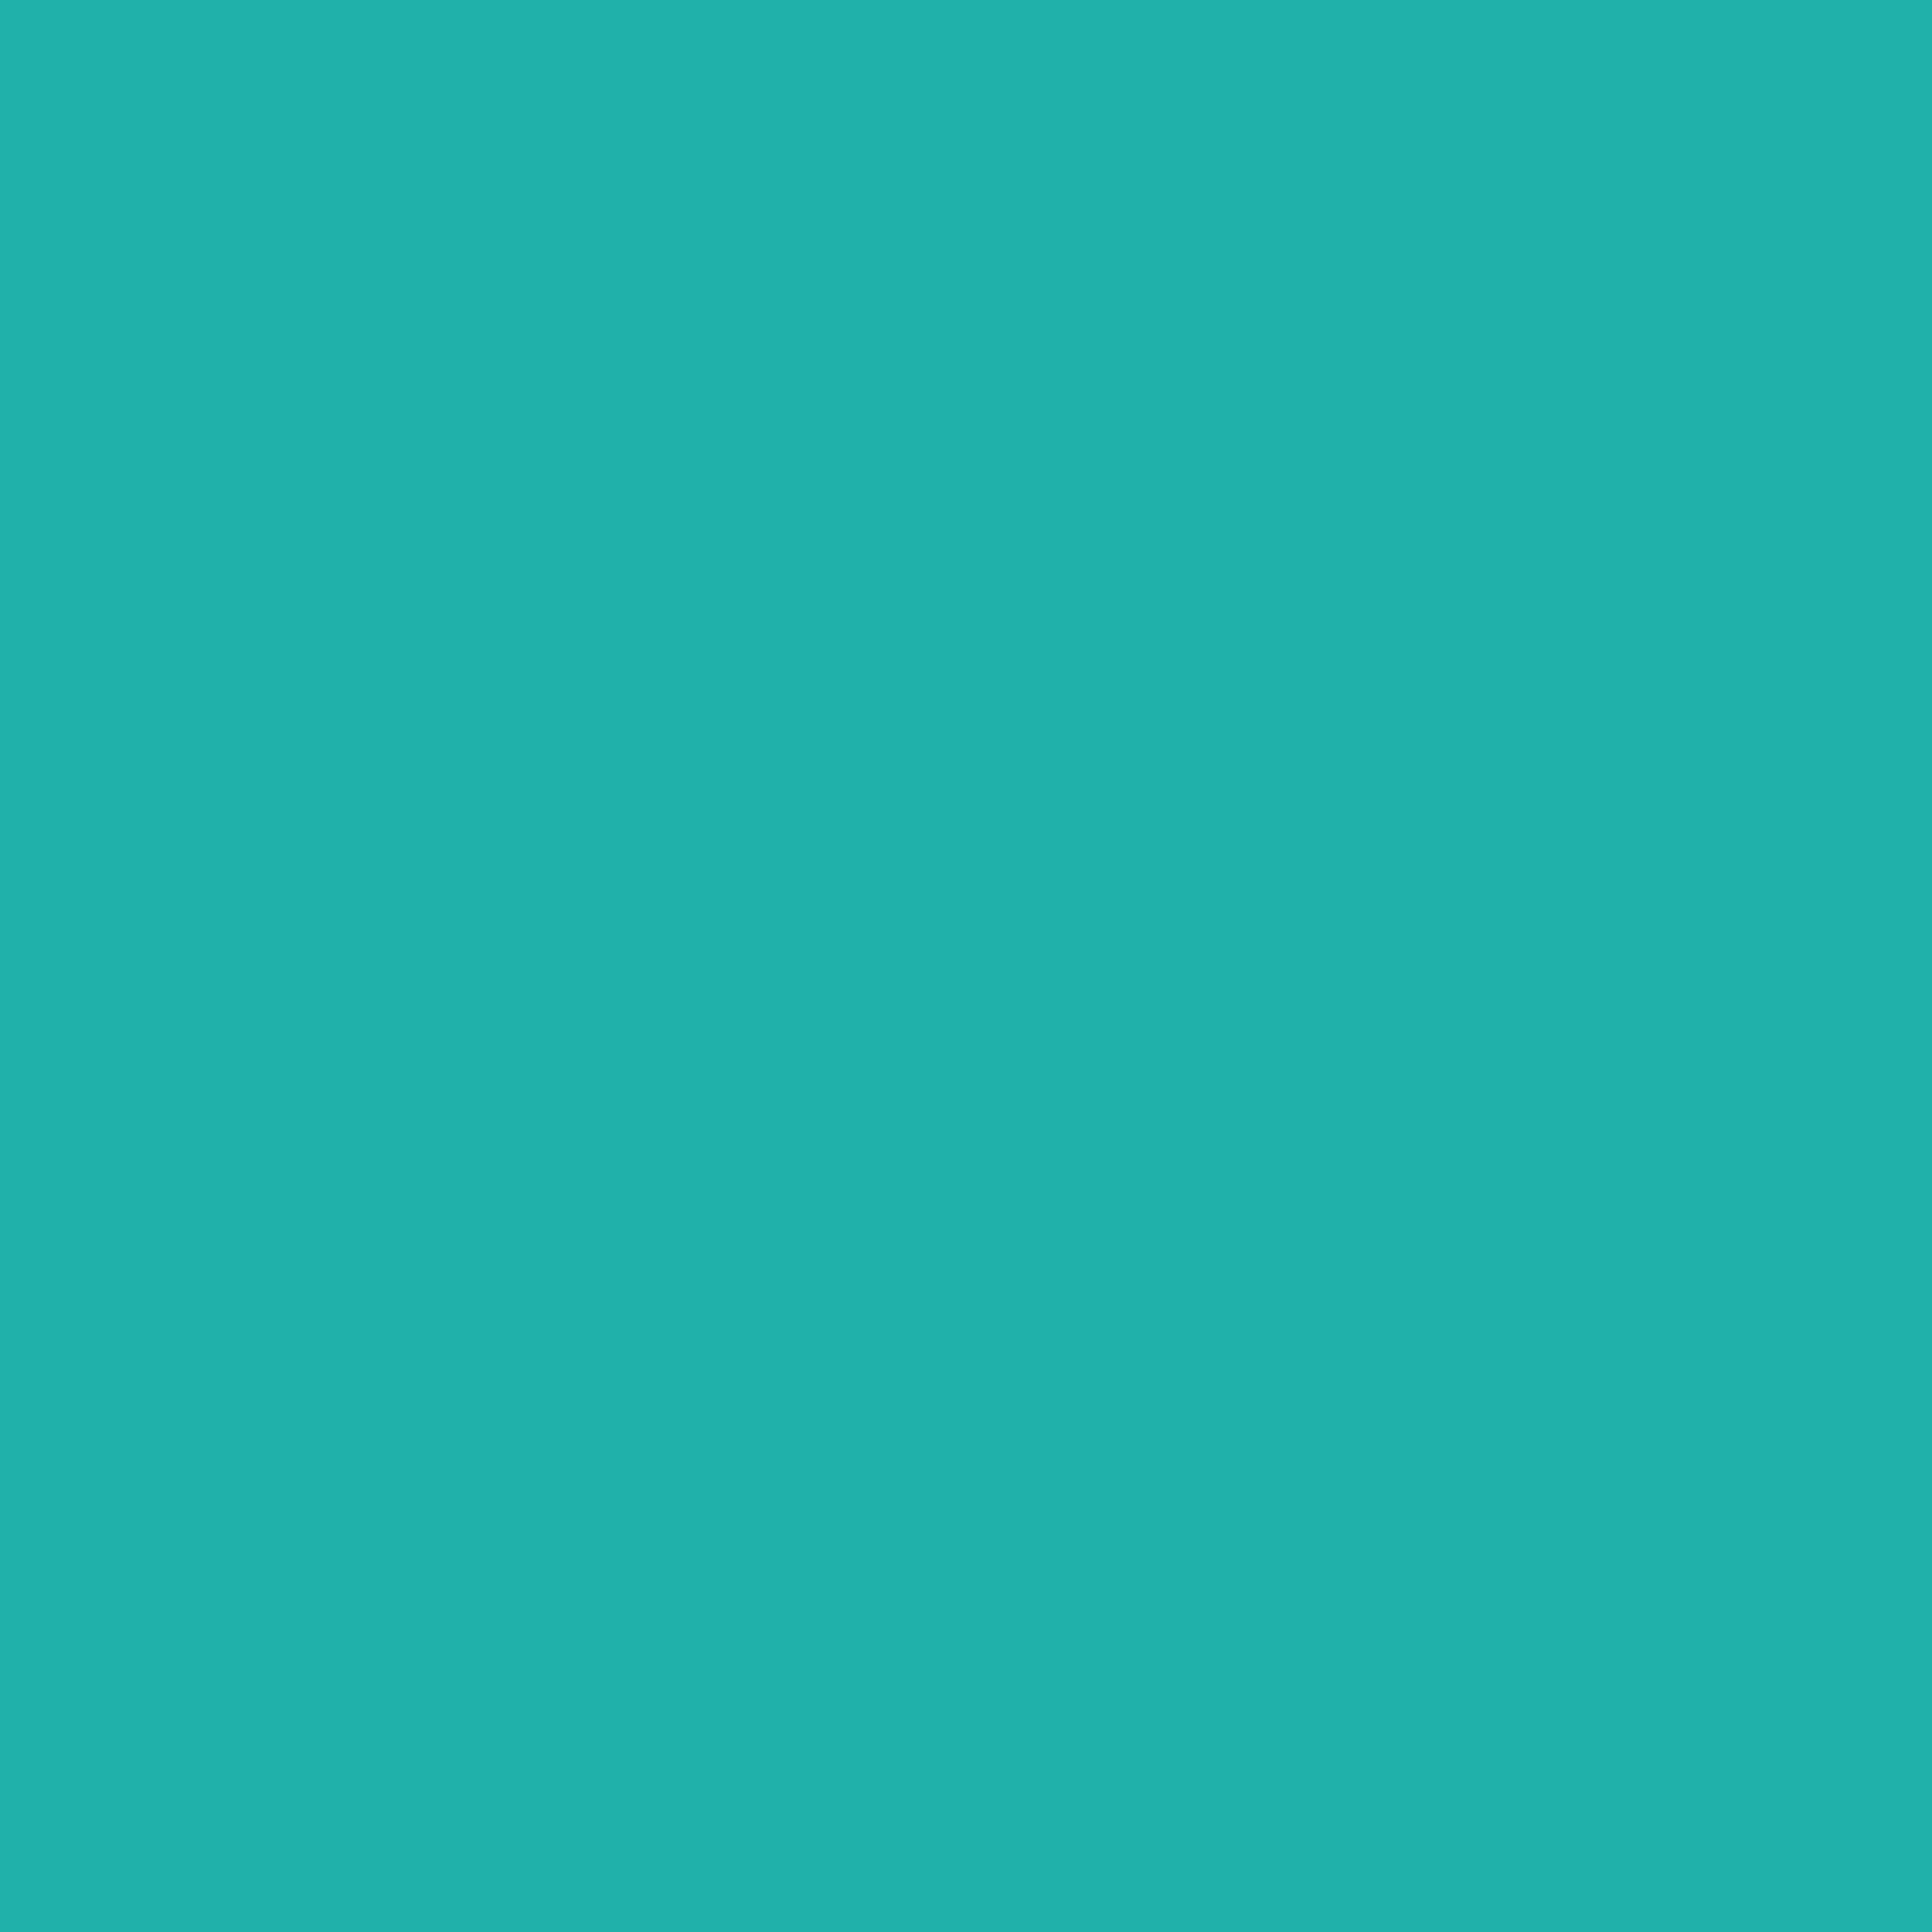 3600x3600 Light Sea Green Solid Color Background